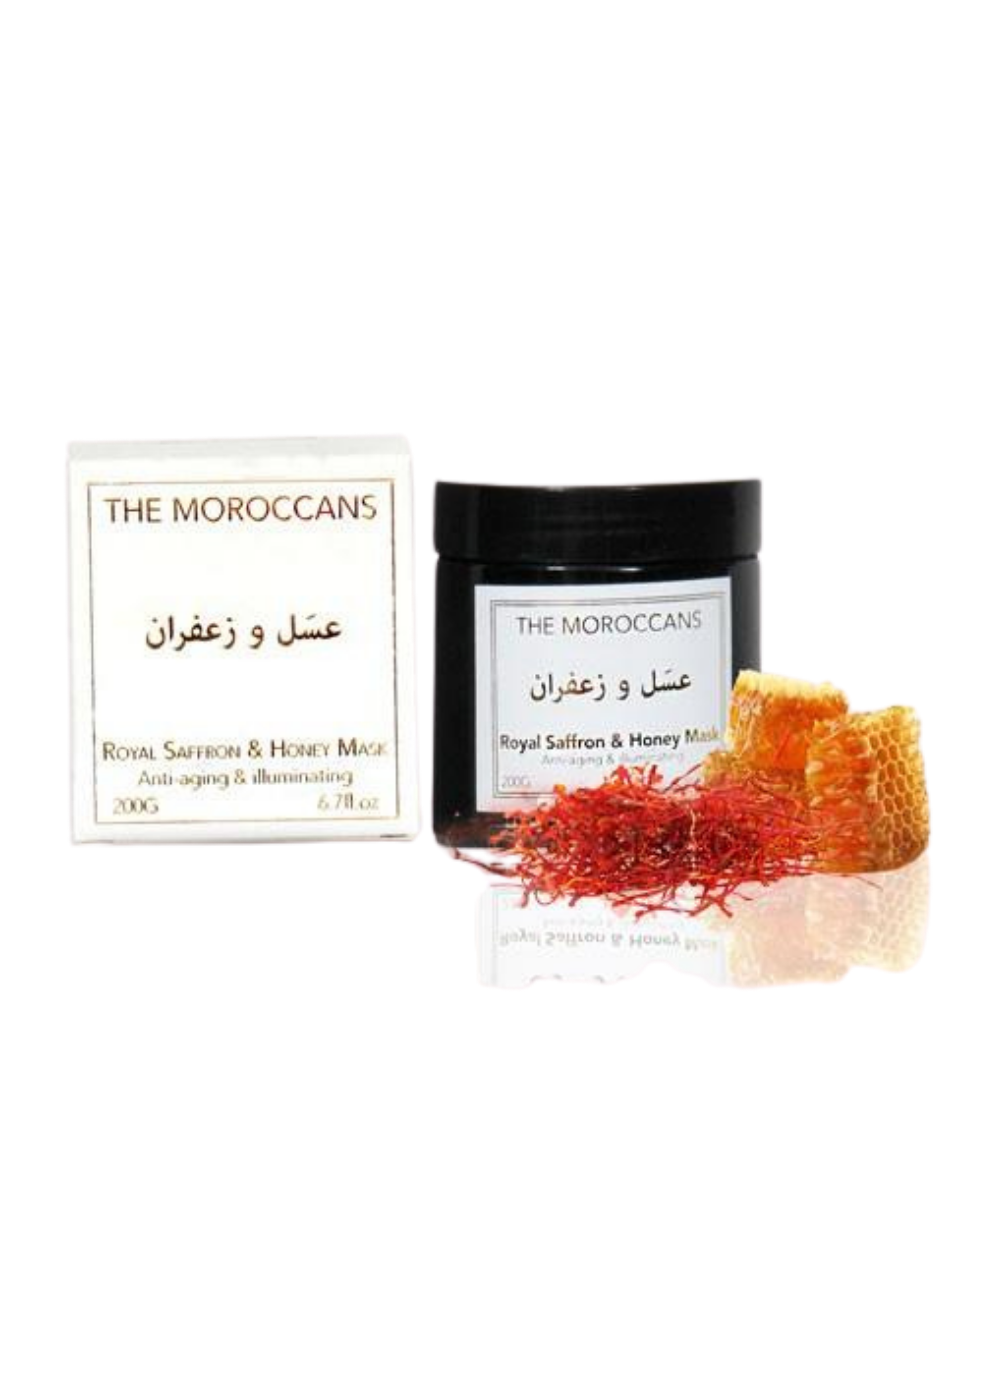 The Moroccans Royal Saffron & Honey Mask